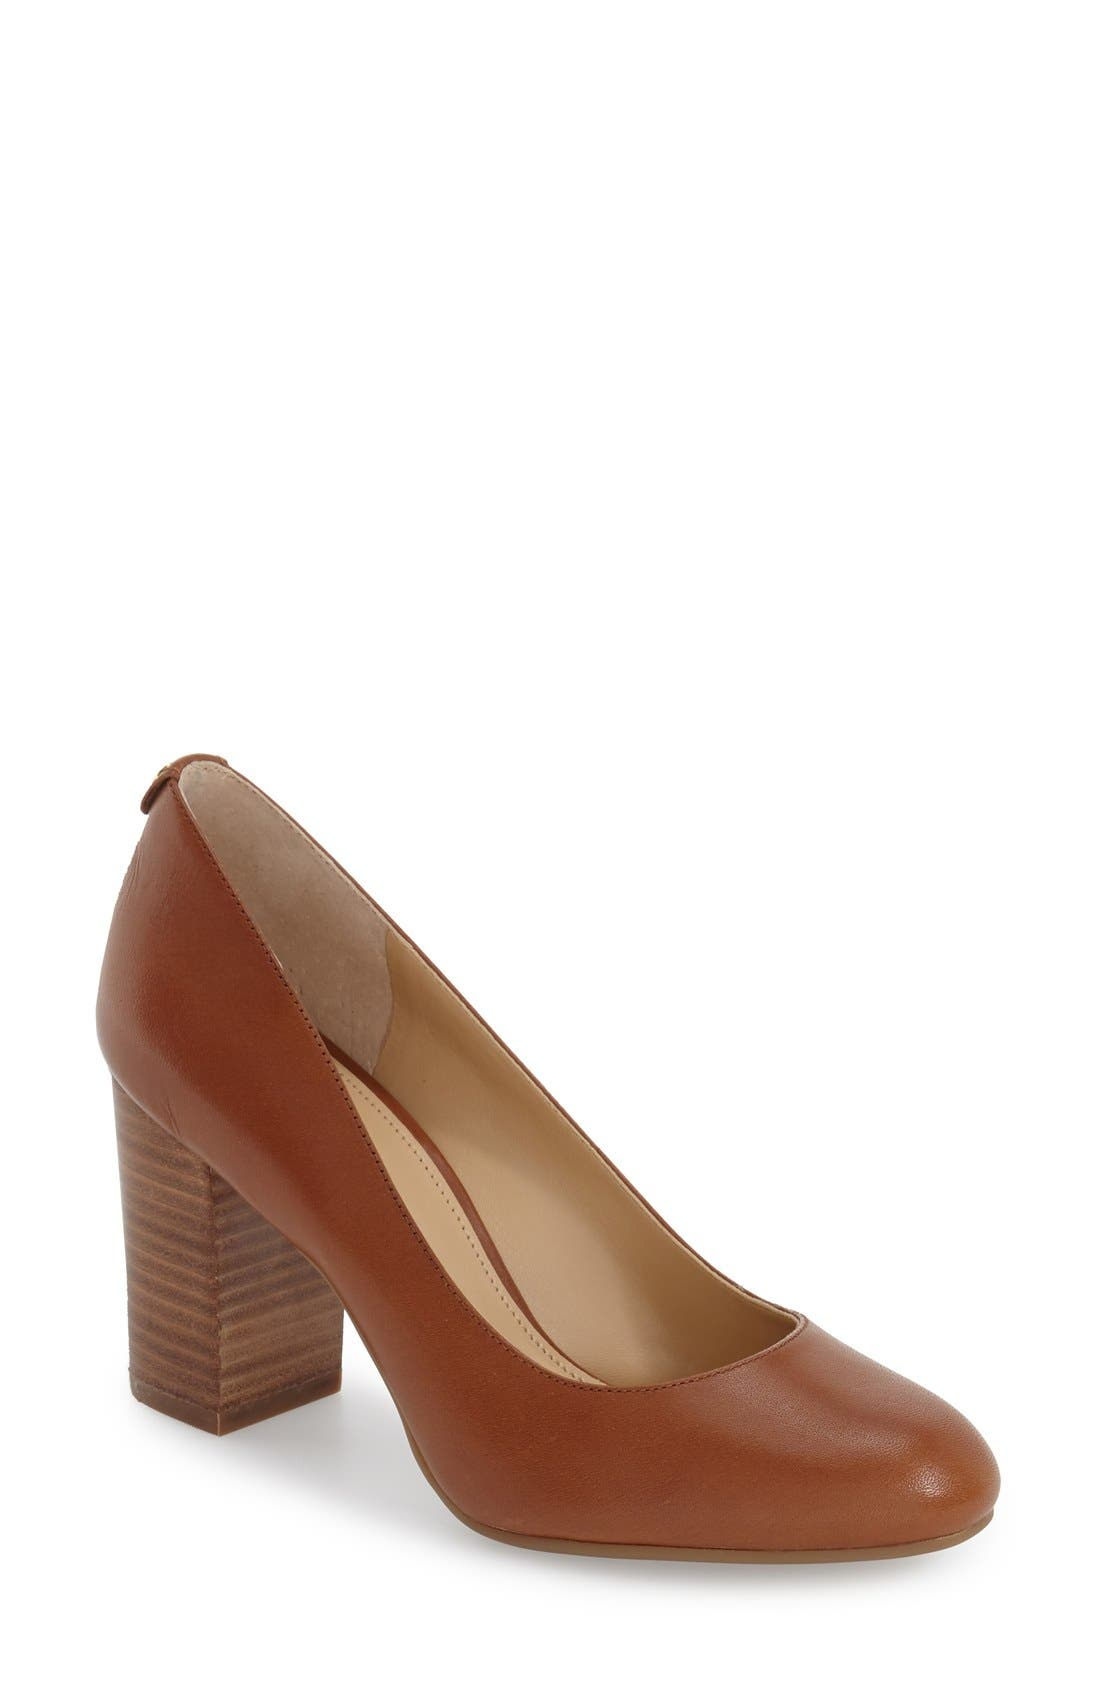 'Lucy - Flex' Round Toe Pump,                             Main thumbnail 2, color,